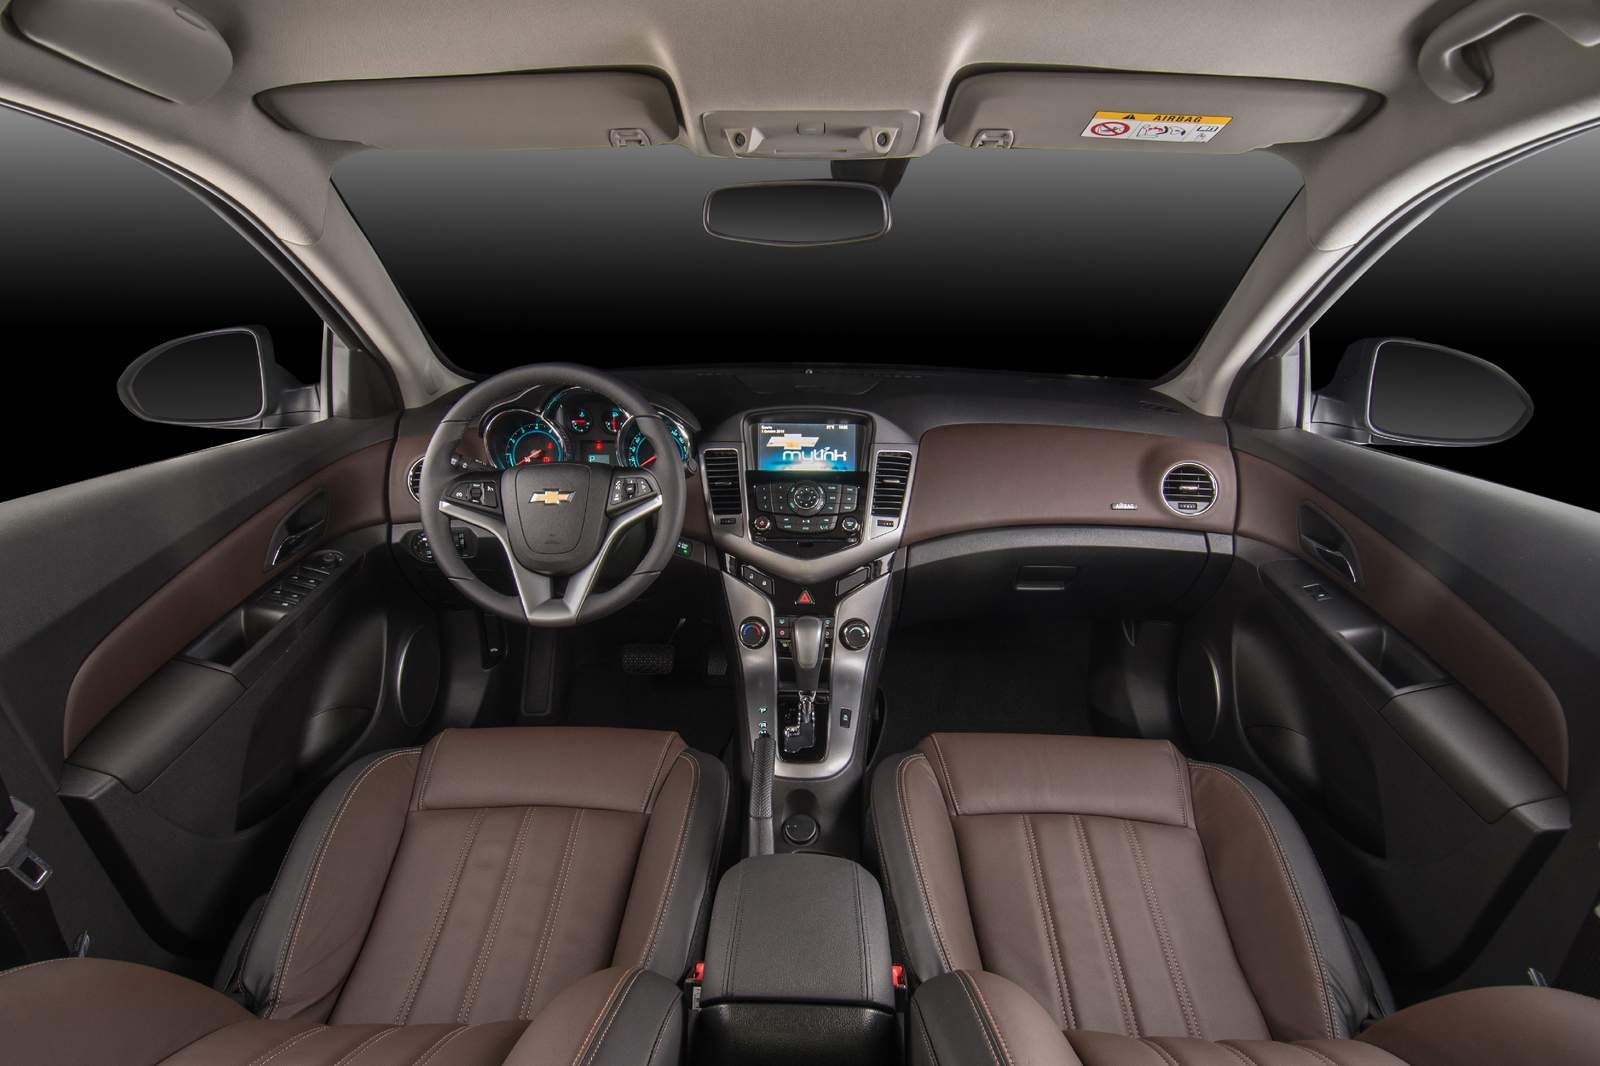 2015 chevrolet cruze interior interior do gm cruze sedan 2015